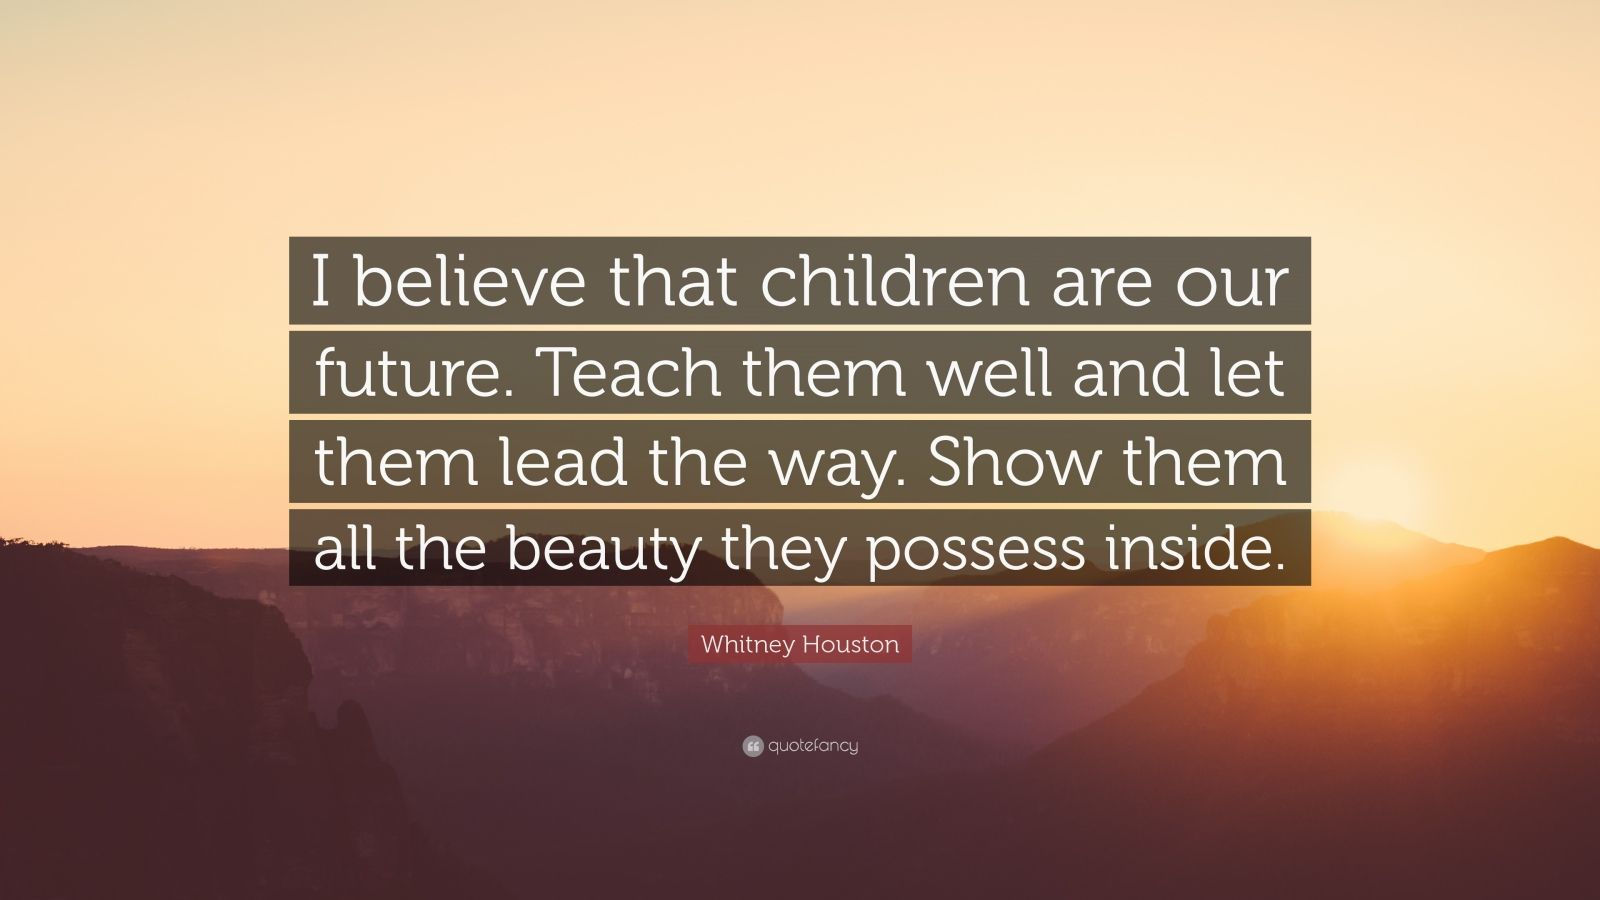 Steve Jobs Motivational Quotes Wallpaper Whitney Houston Quote I Believe That Children Are Our